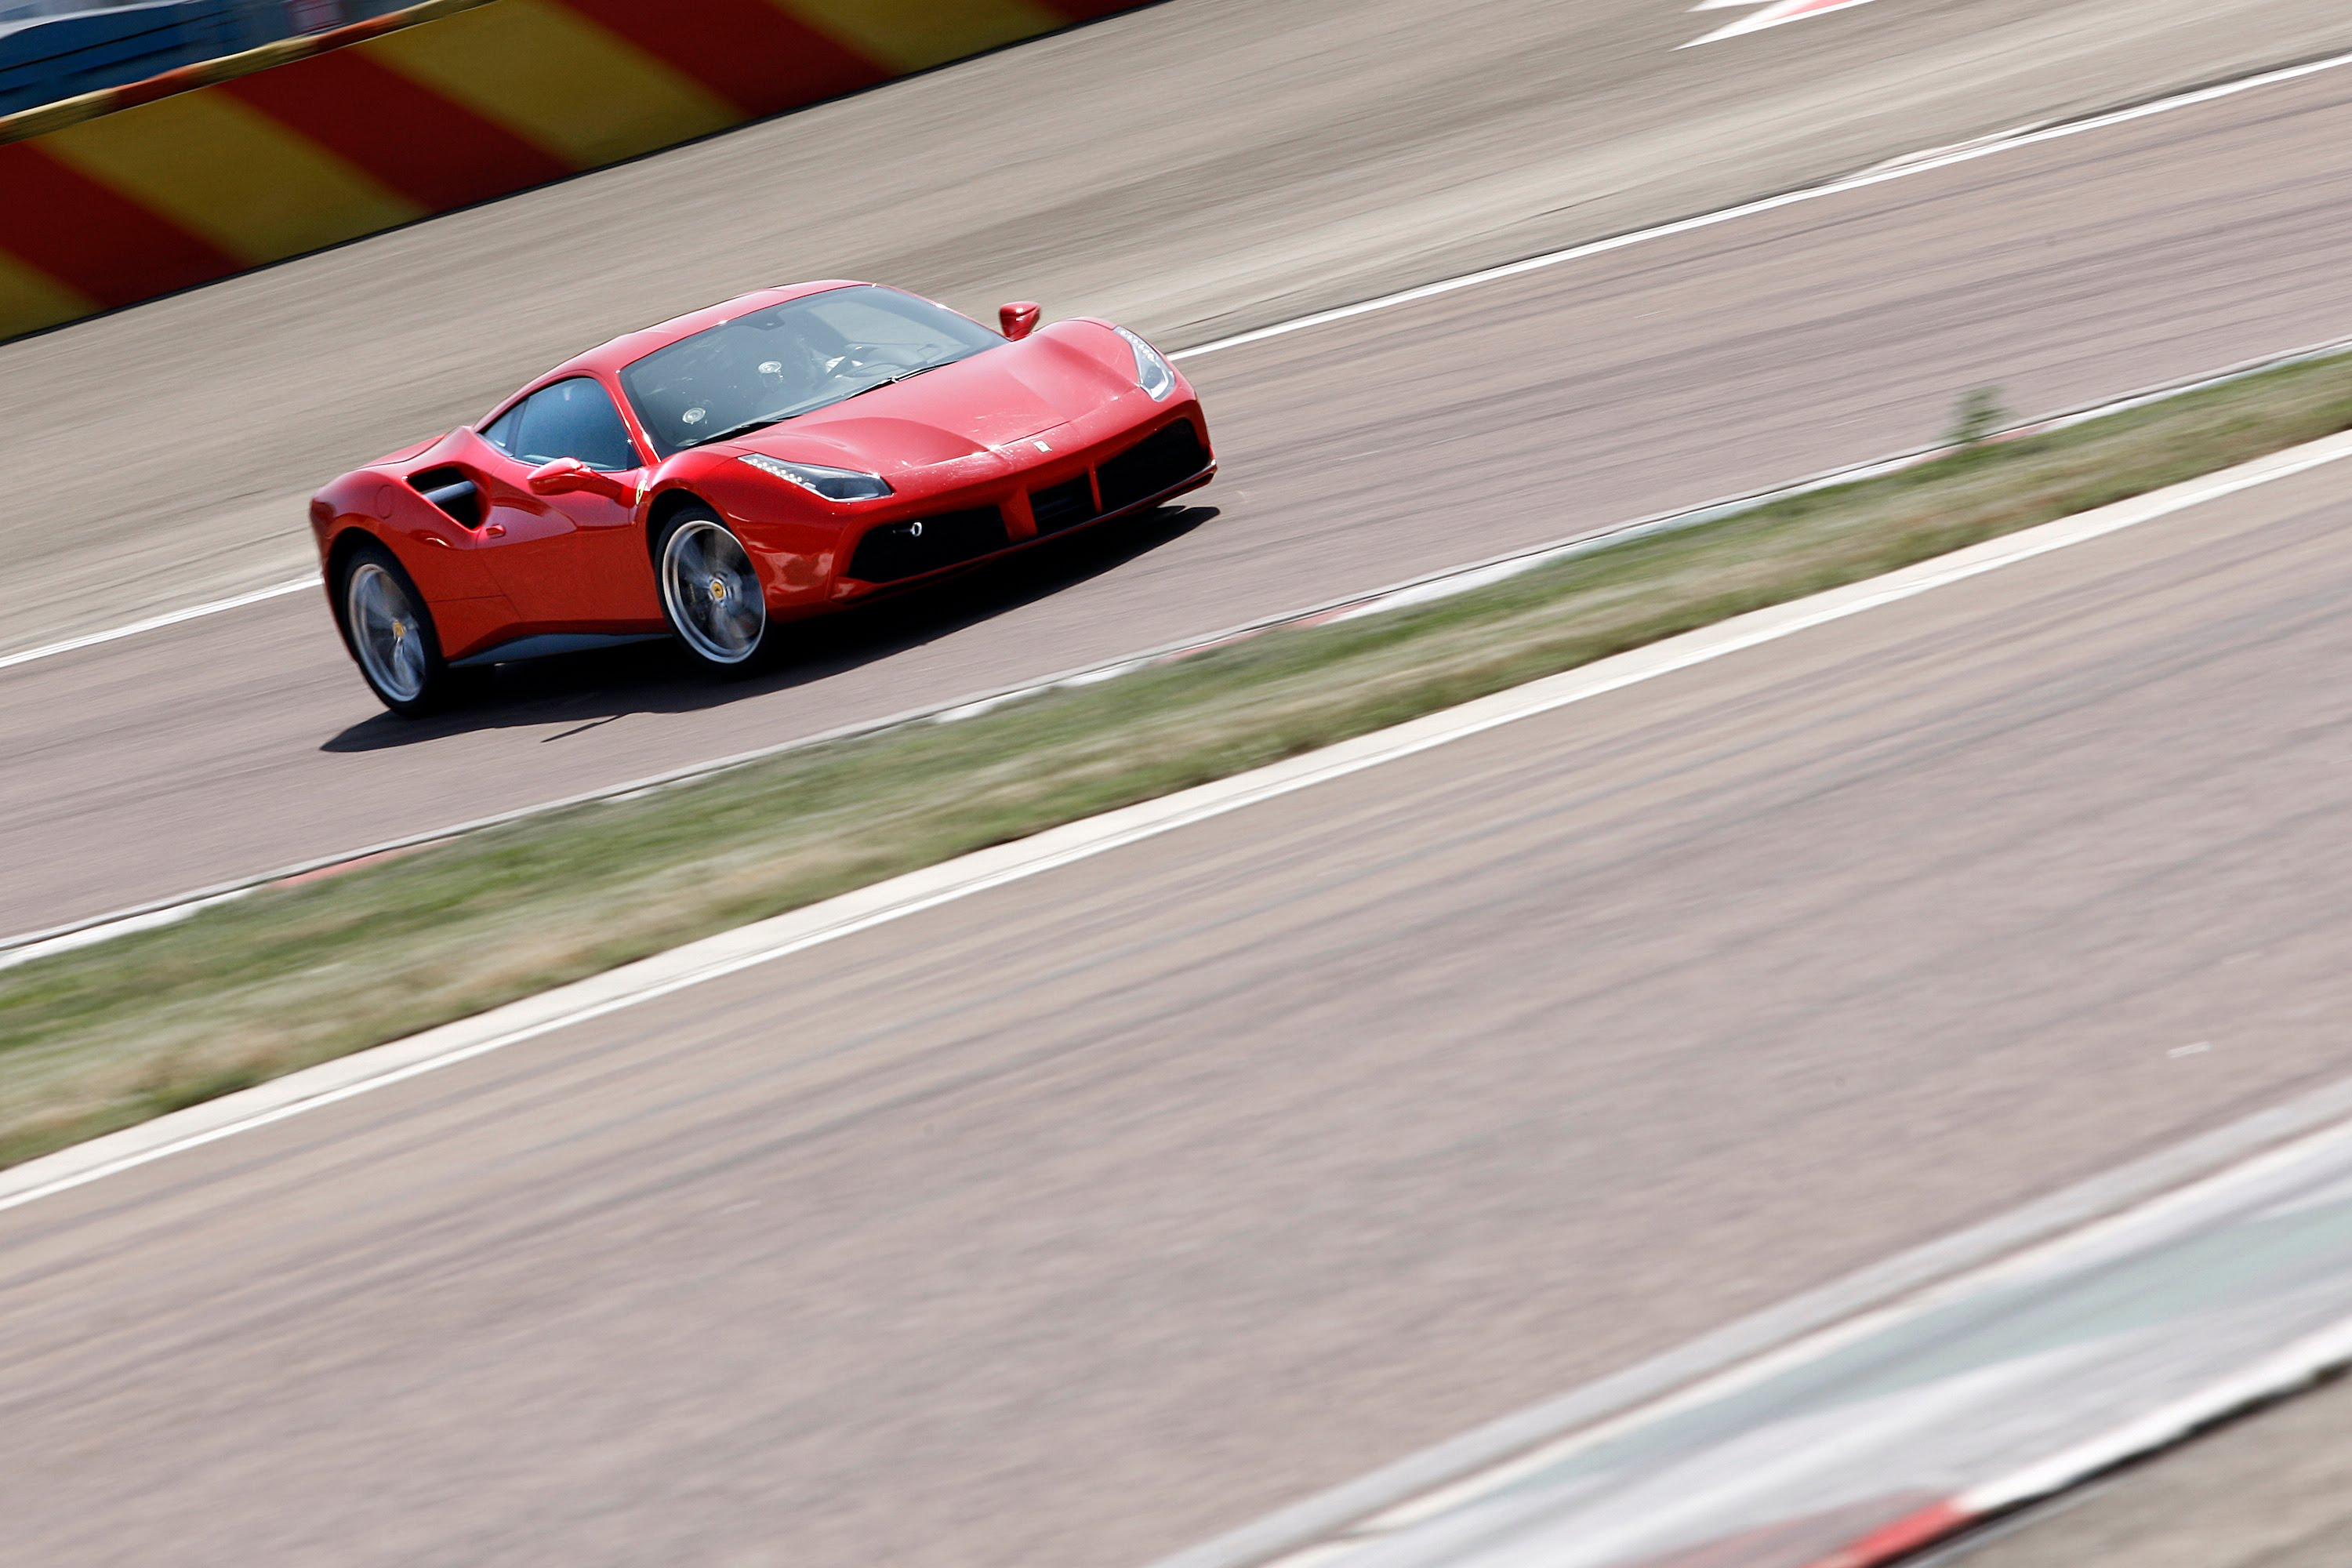 Ferrari 488 GTB on road and track – Chris Harris on CarsExcitingAds